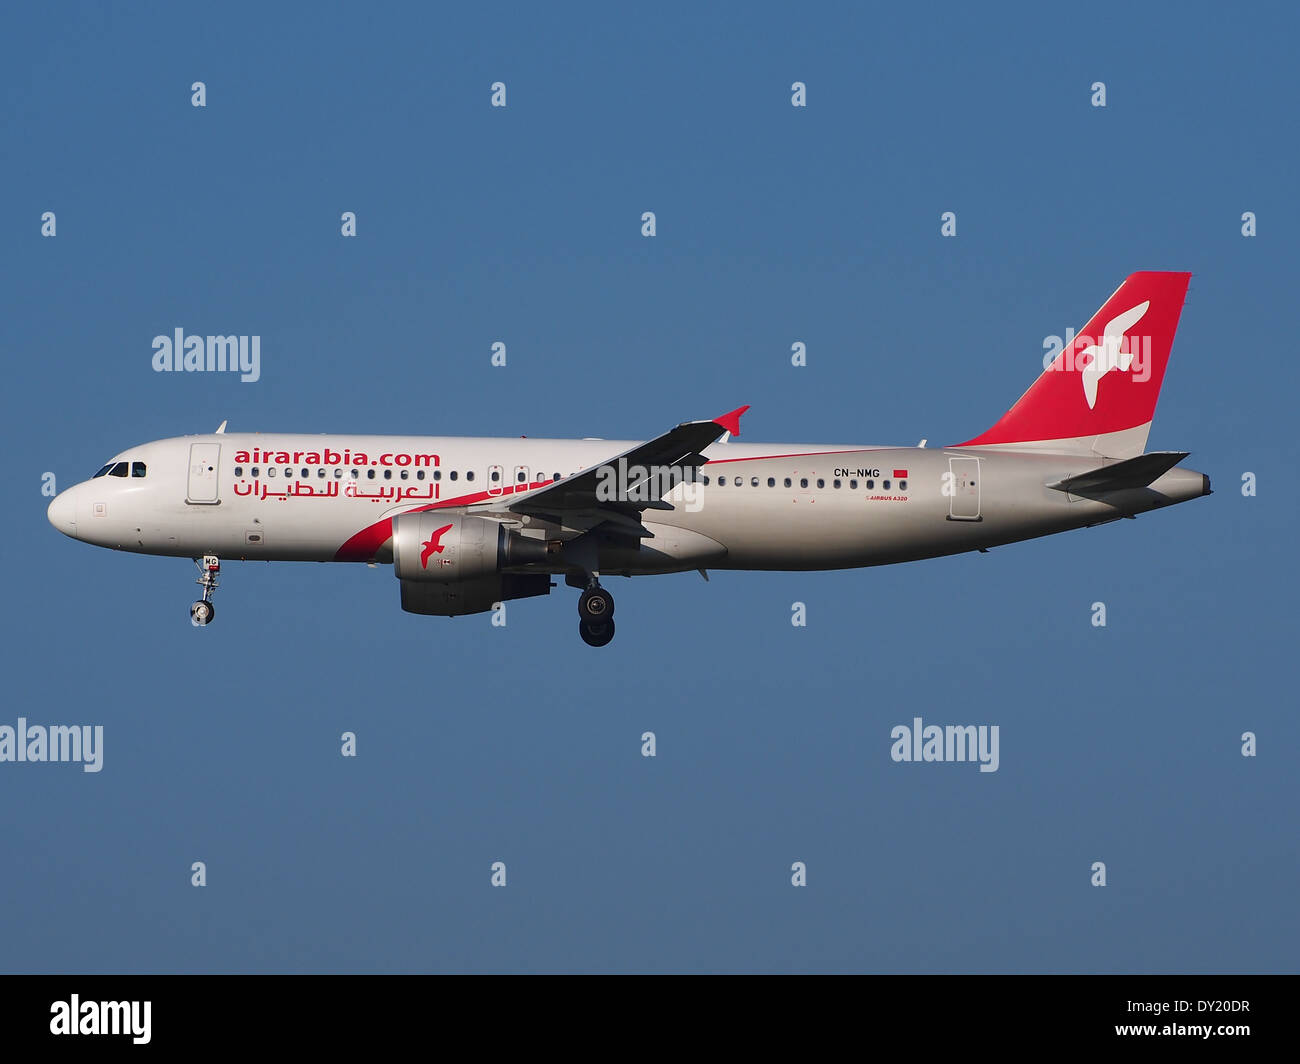 CN-NMG Air Arabia Maroc Airbus A320-214, landing at Schiphol (AMS - EHAM), Netherlands, pic3 - Stock Image